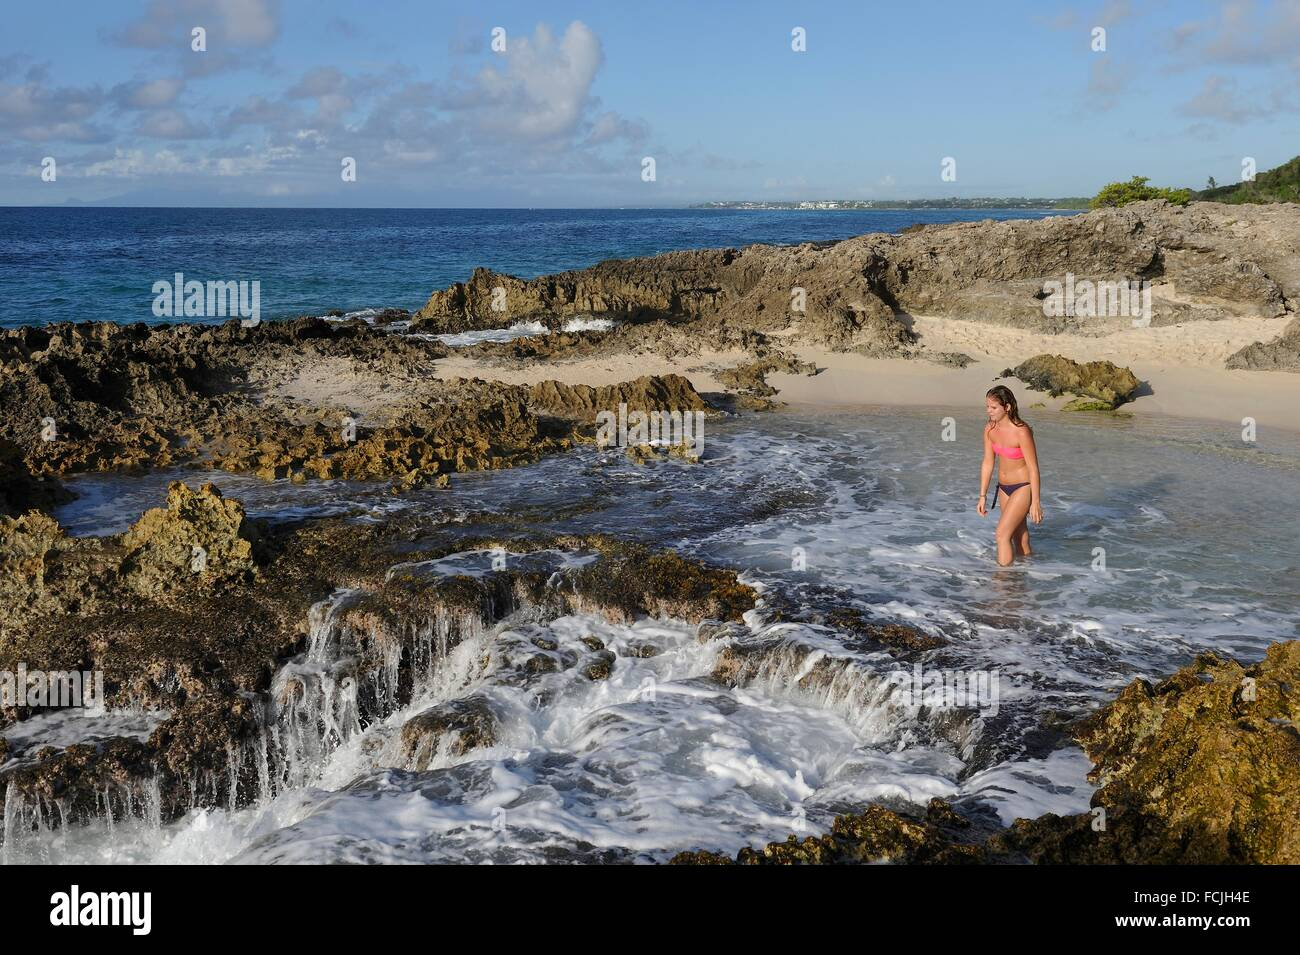 beach at Pointe des Chateaux, Grande-Terre, Guadeloupe, overseas region of France, Leewards Islands, Lesser Antilles, - Stock Image